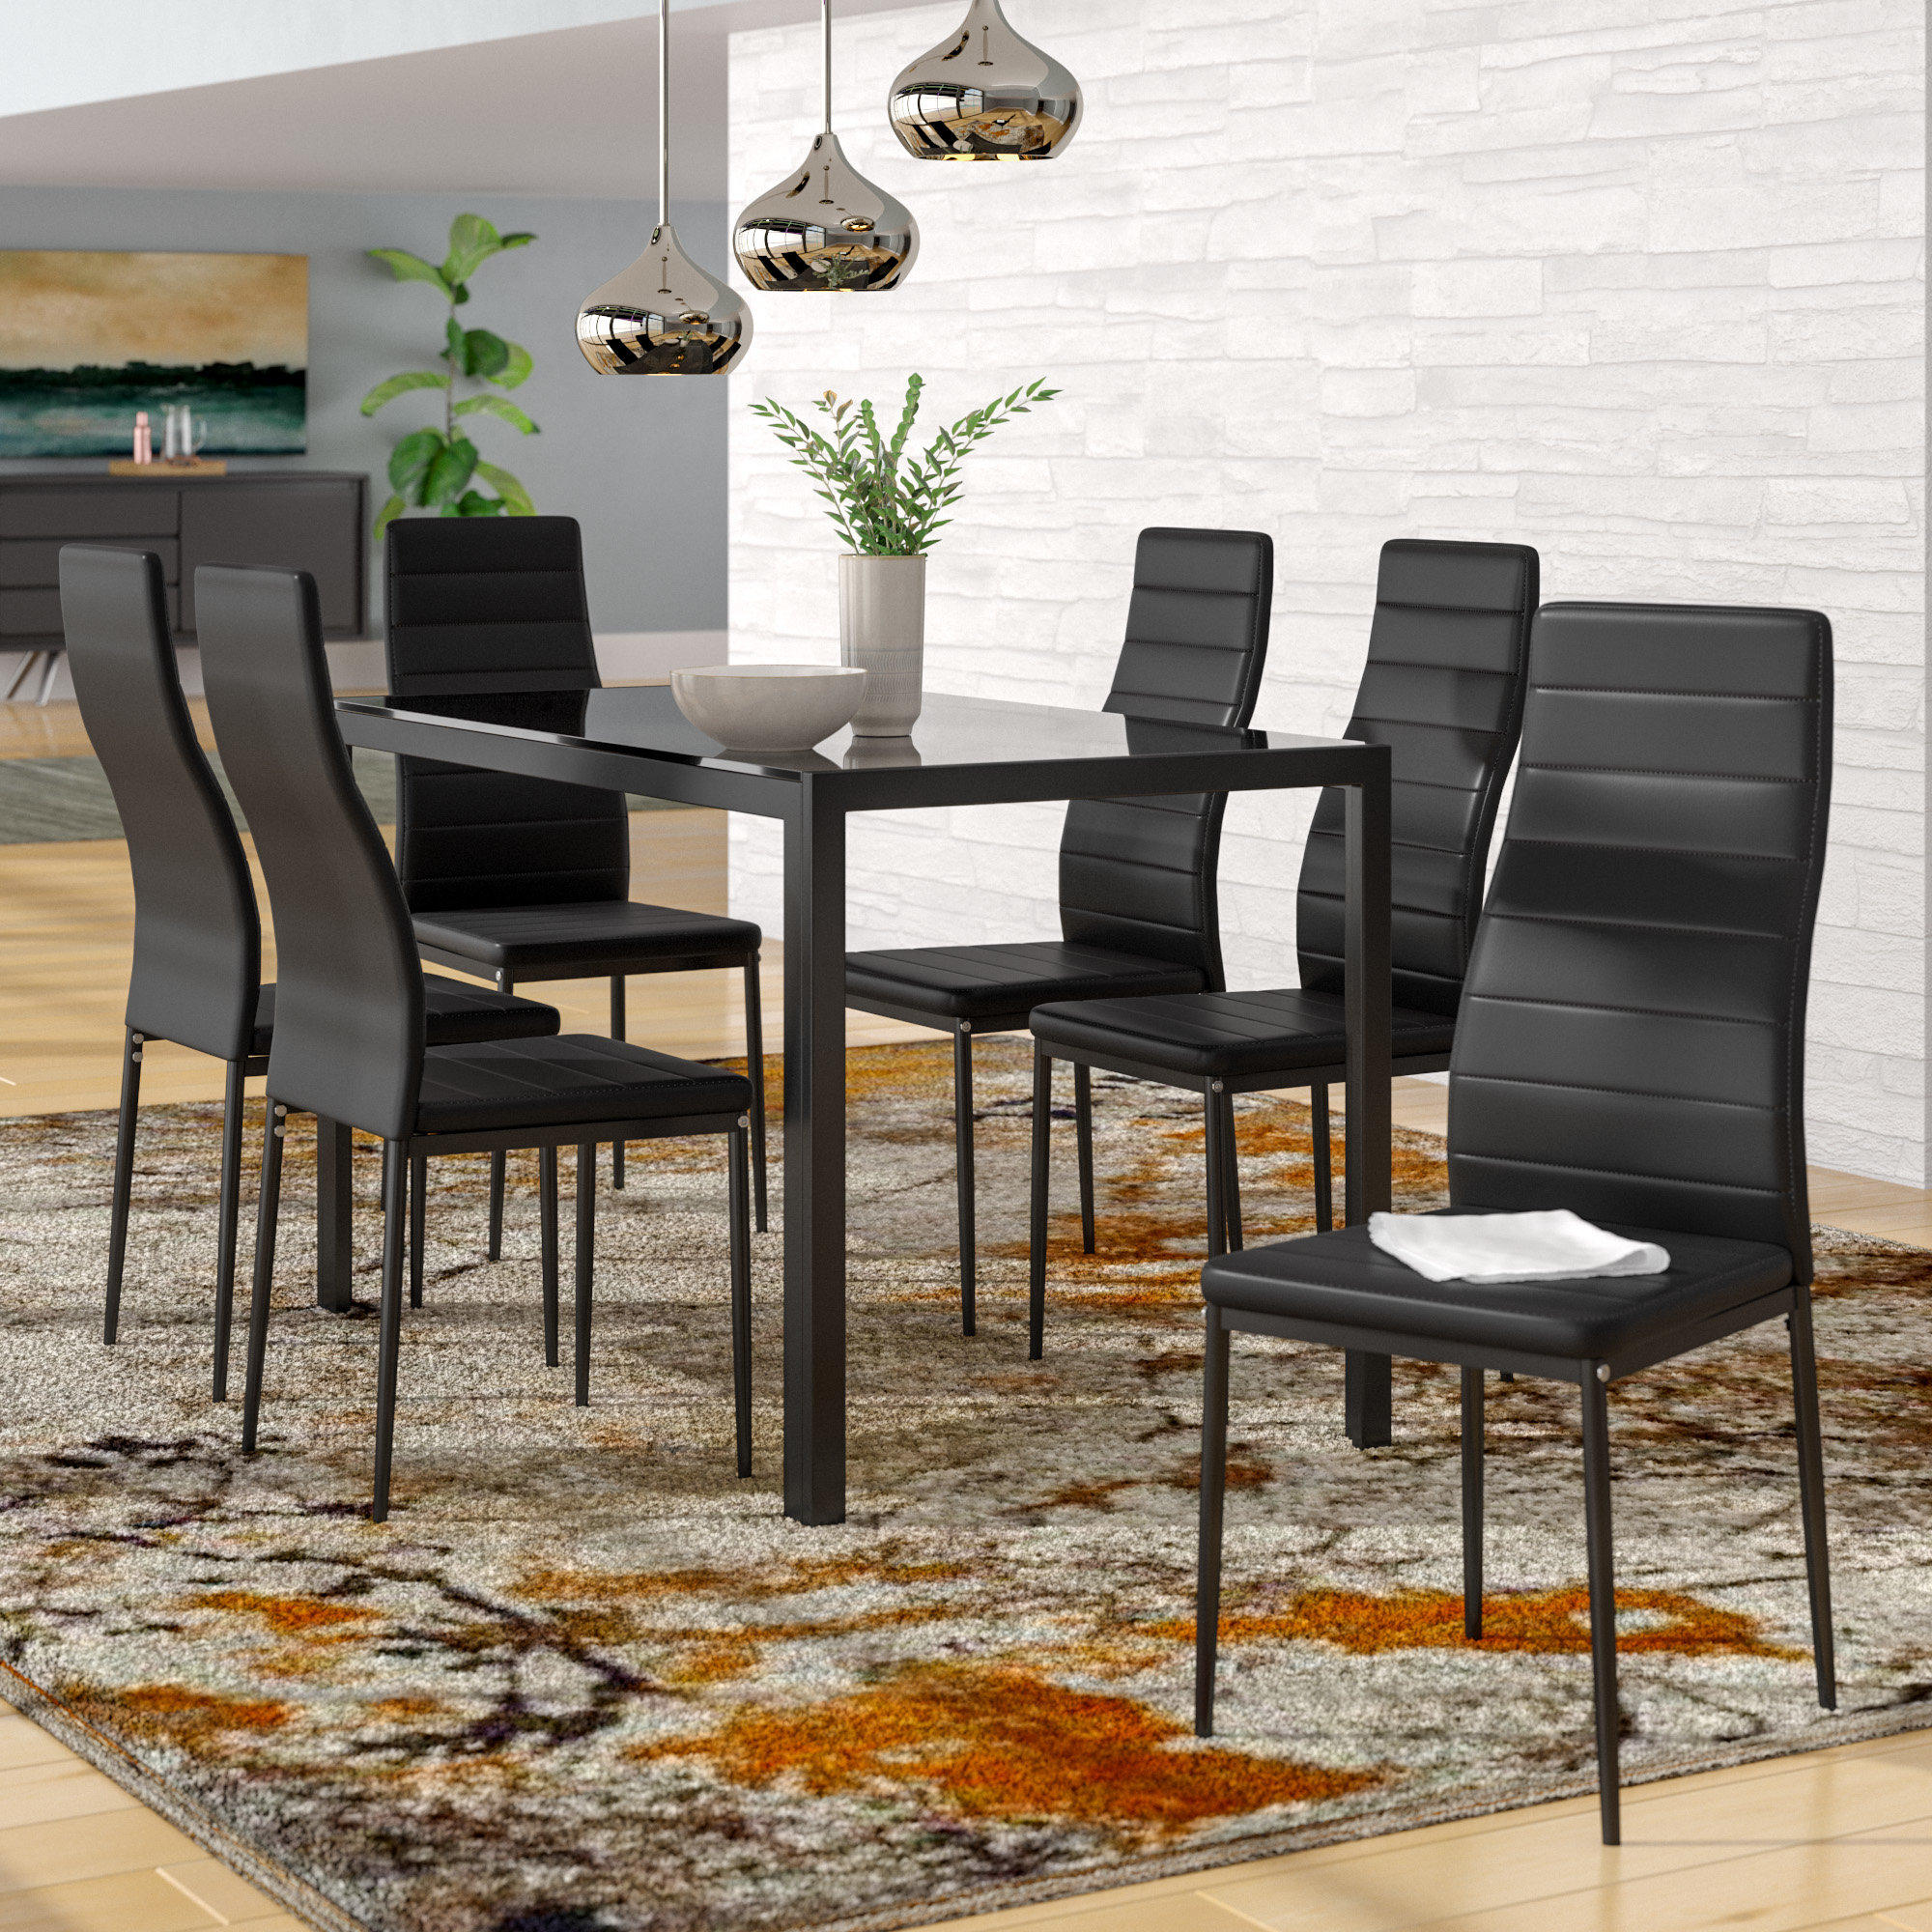 Orren Ellis Renick Modern 7 Piece Dining Set & Reviews Regarding Most Popular Tavarez 5 Piece Dining Sets (Gallery 16 of 20)